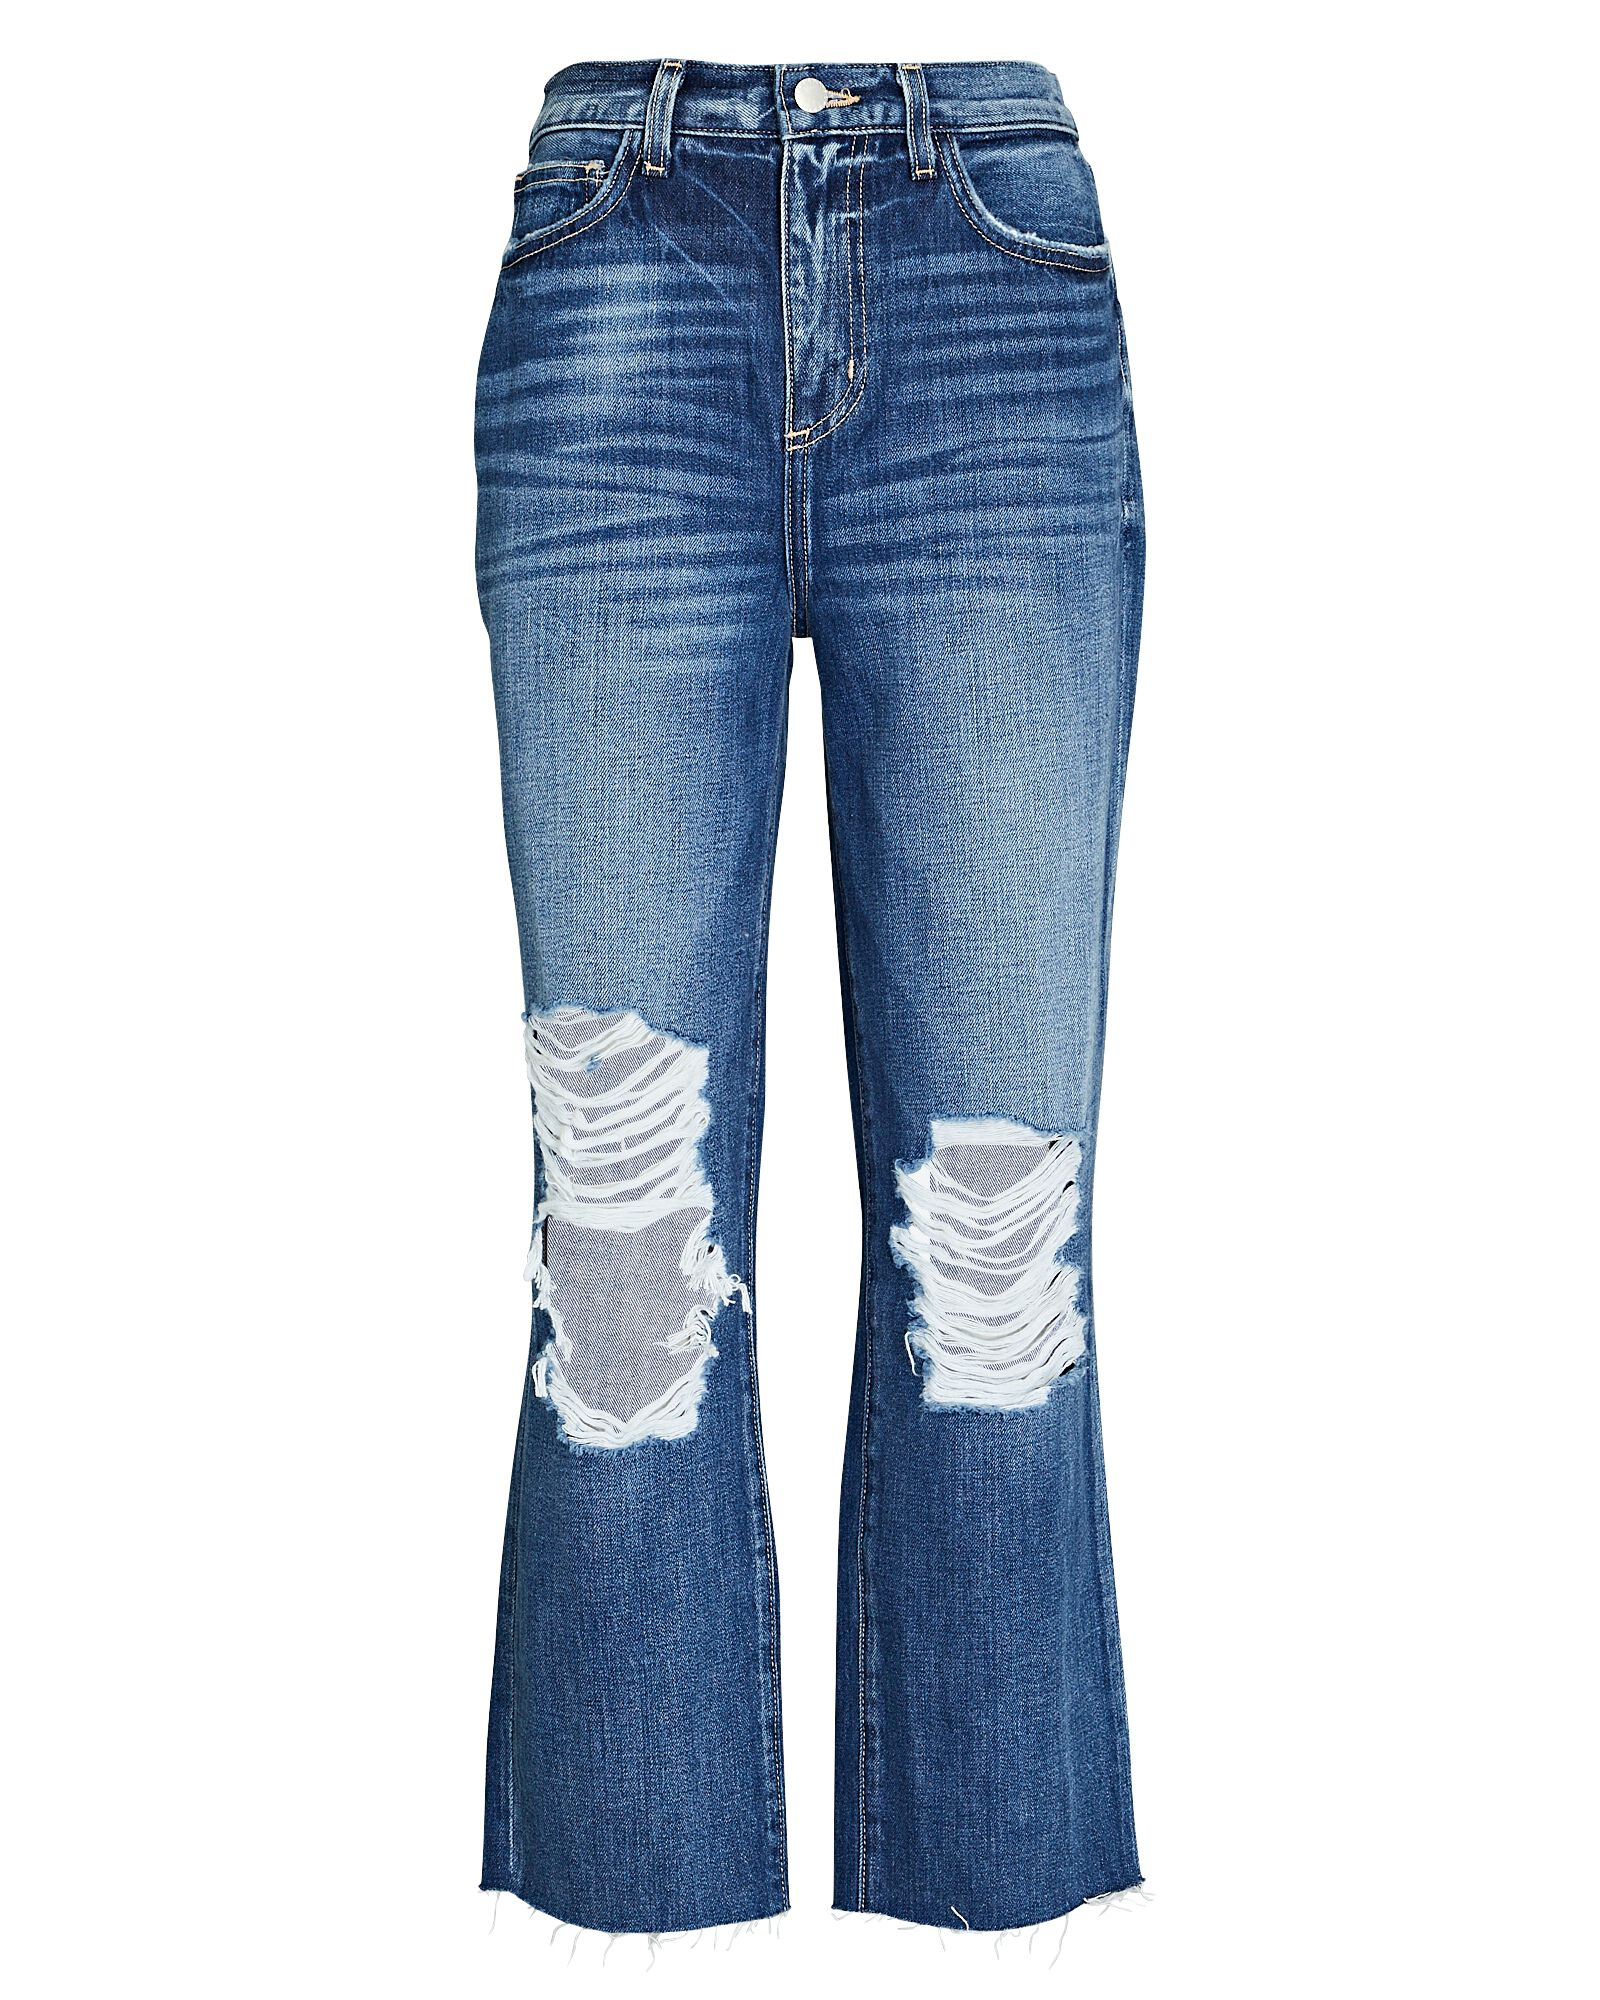 Adele Distressed Stovepipe Jeans, NEWBERRY, hi-res